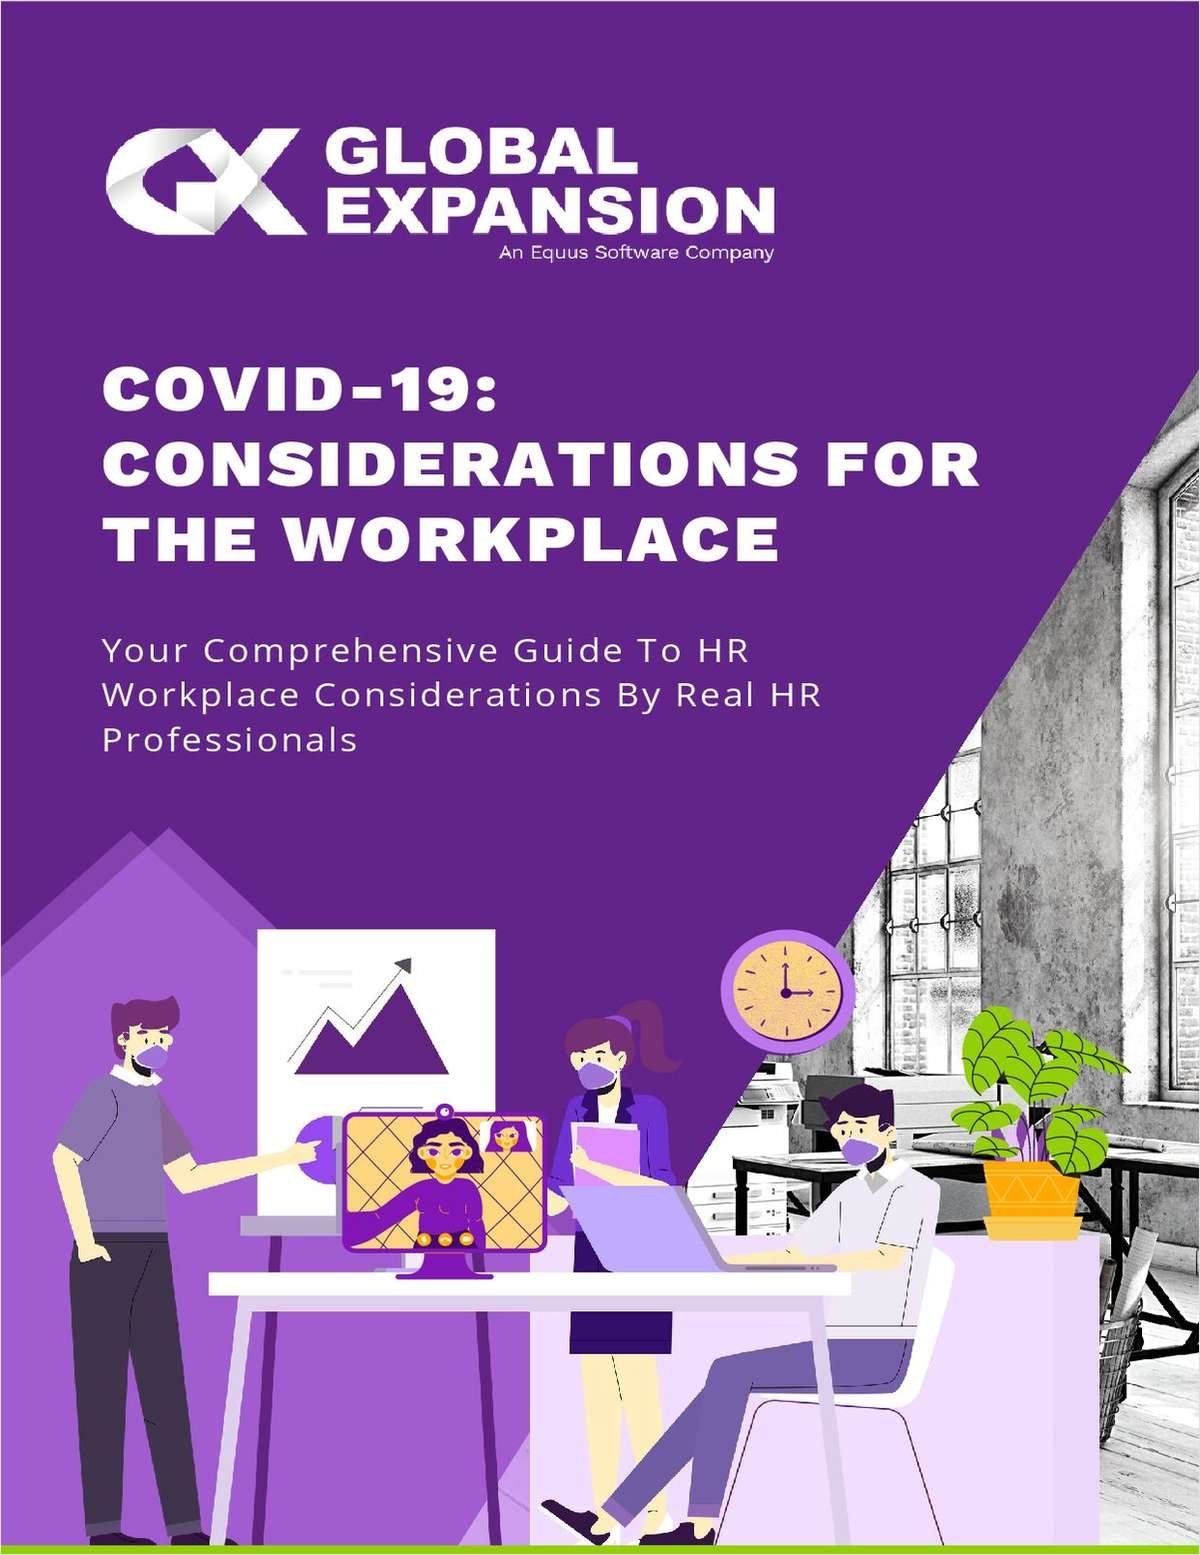 COVID-19: CONSIDERATIONS FOR THE WORKPLACE